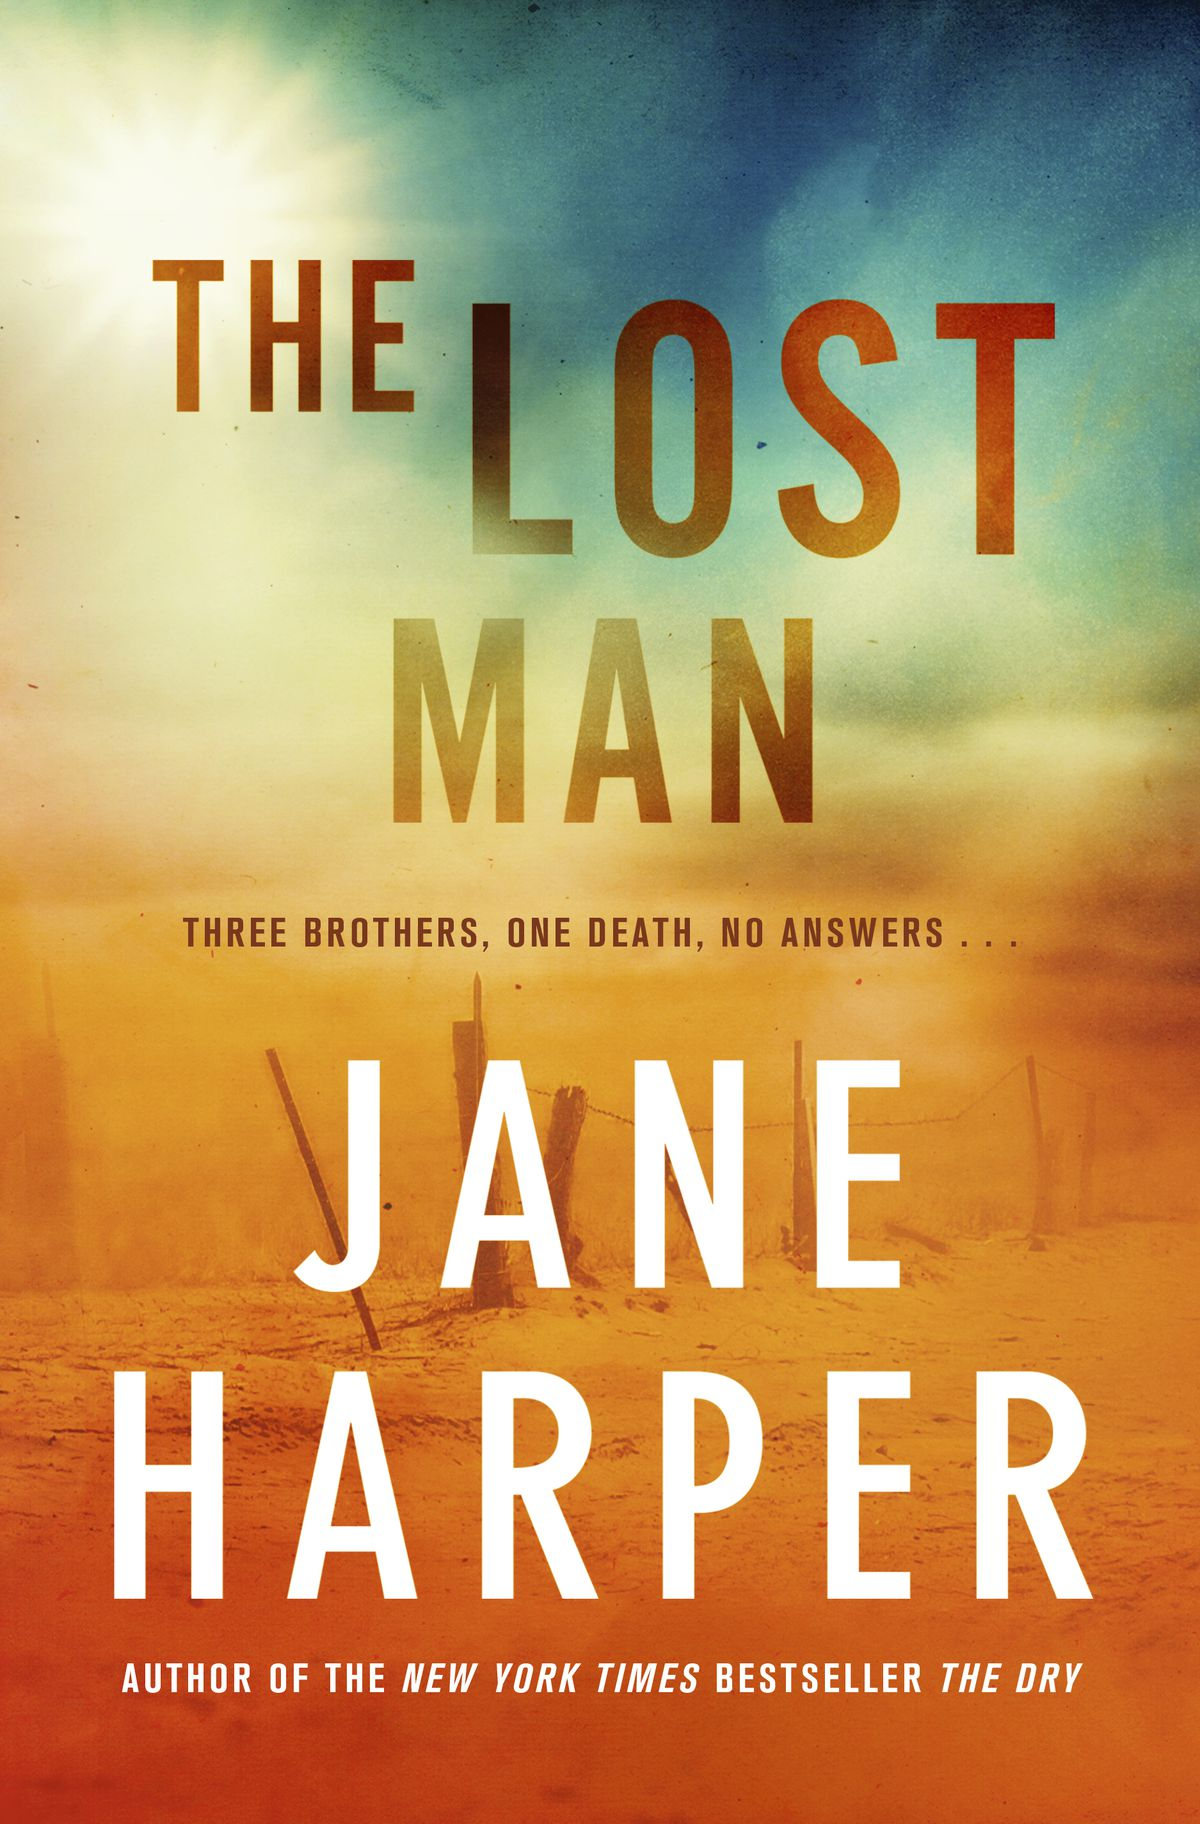 """<a href=""""https://us.macmillan.com/excerpt?isbn=9781250105684"""" target=""""_blank"""" rel=""""noopener noreferrer"""">Click to read an excerpt of """"The Lost Man"""" by Jane Harper. 